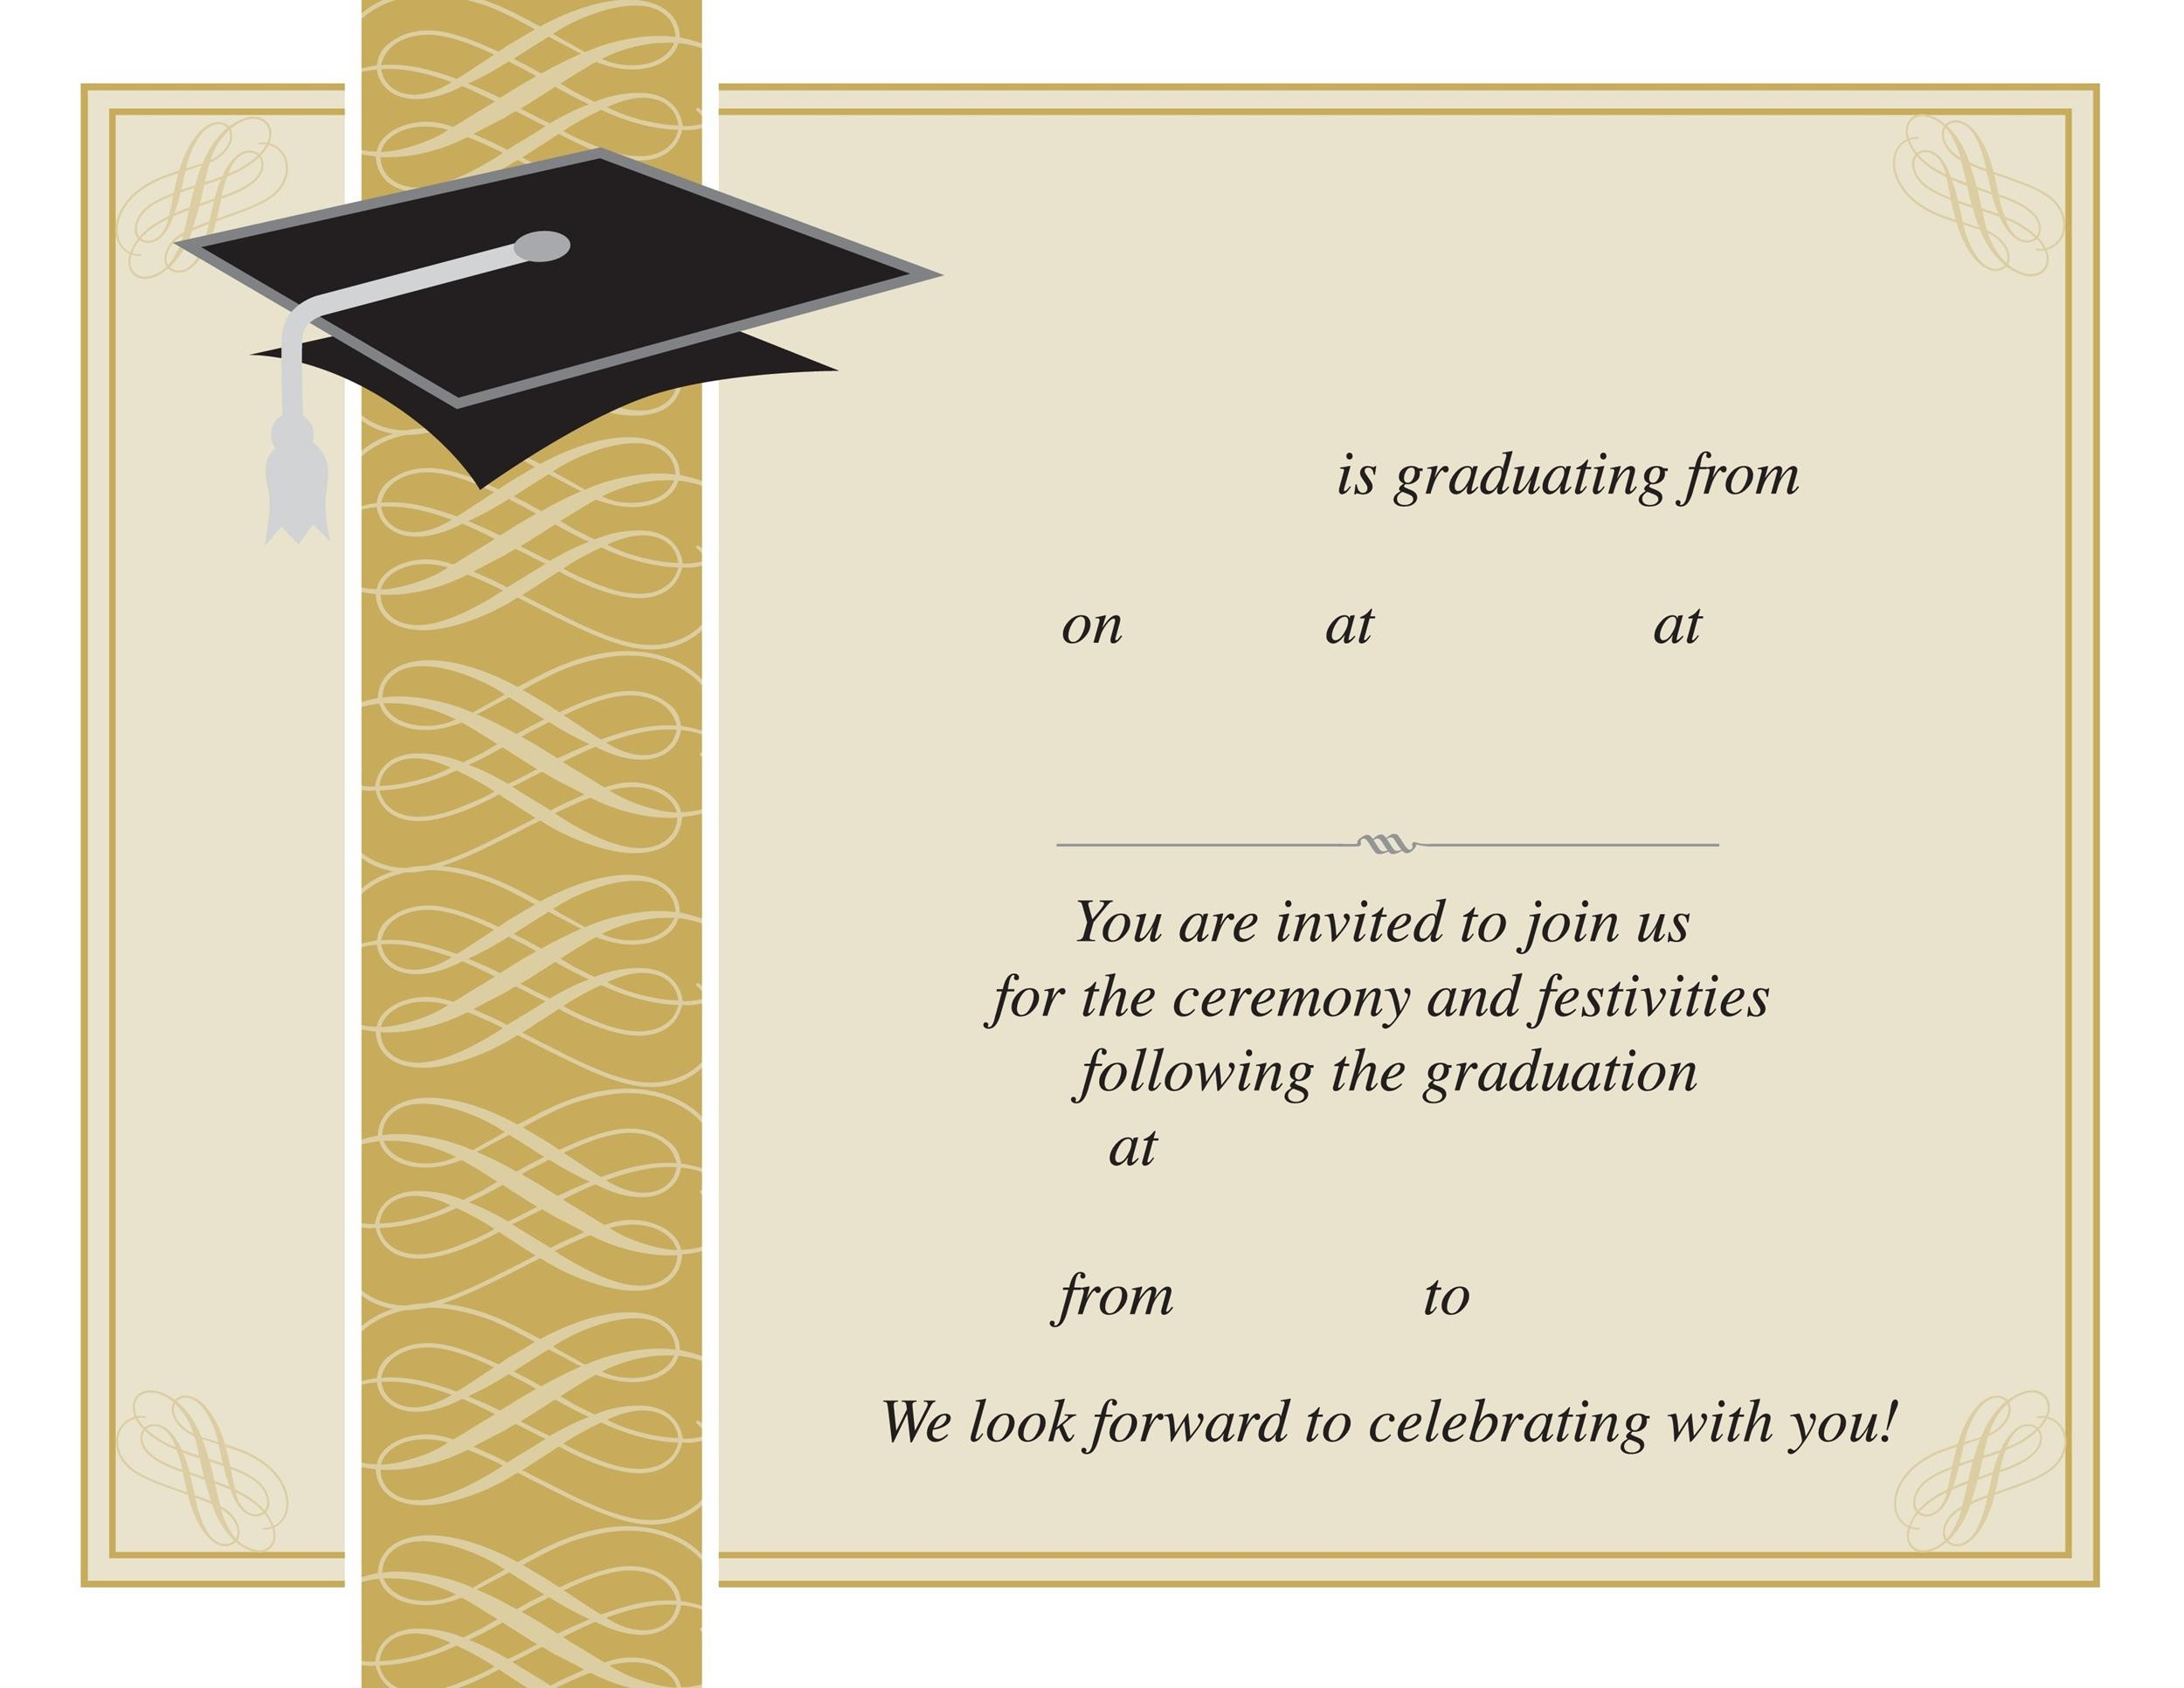 40+ free graduation invitation templates - template lab, Invitation templates